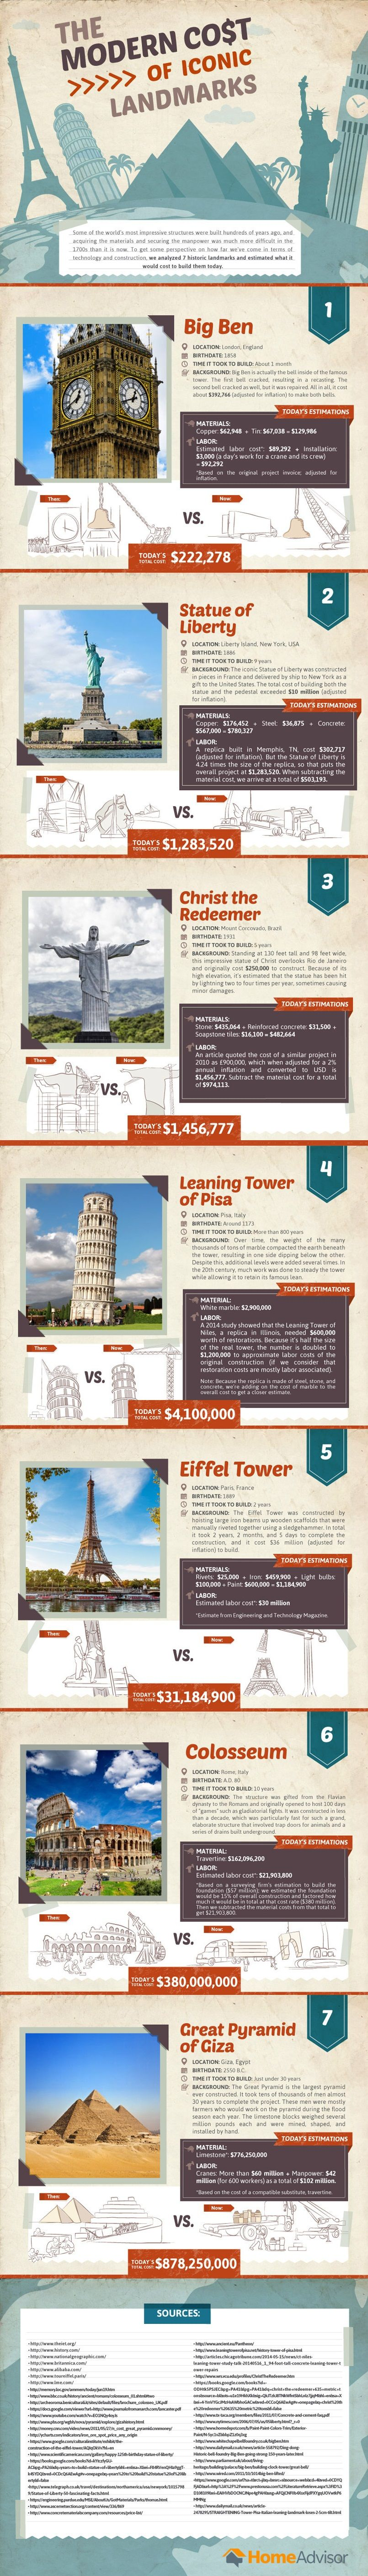 The Modern Cost of Iconic Landmarks #infographic